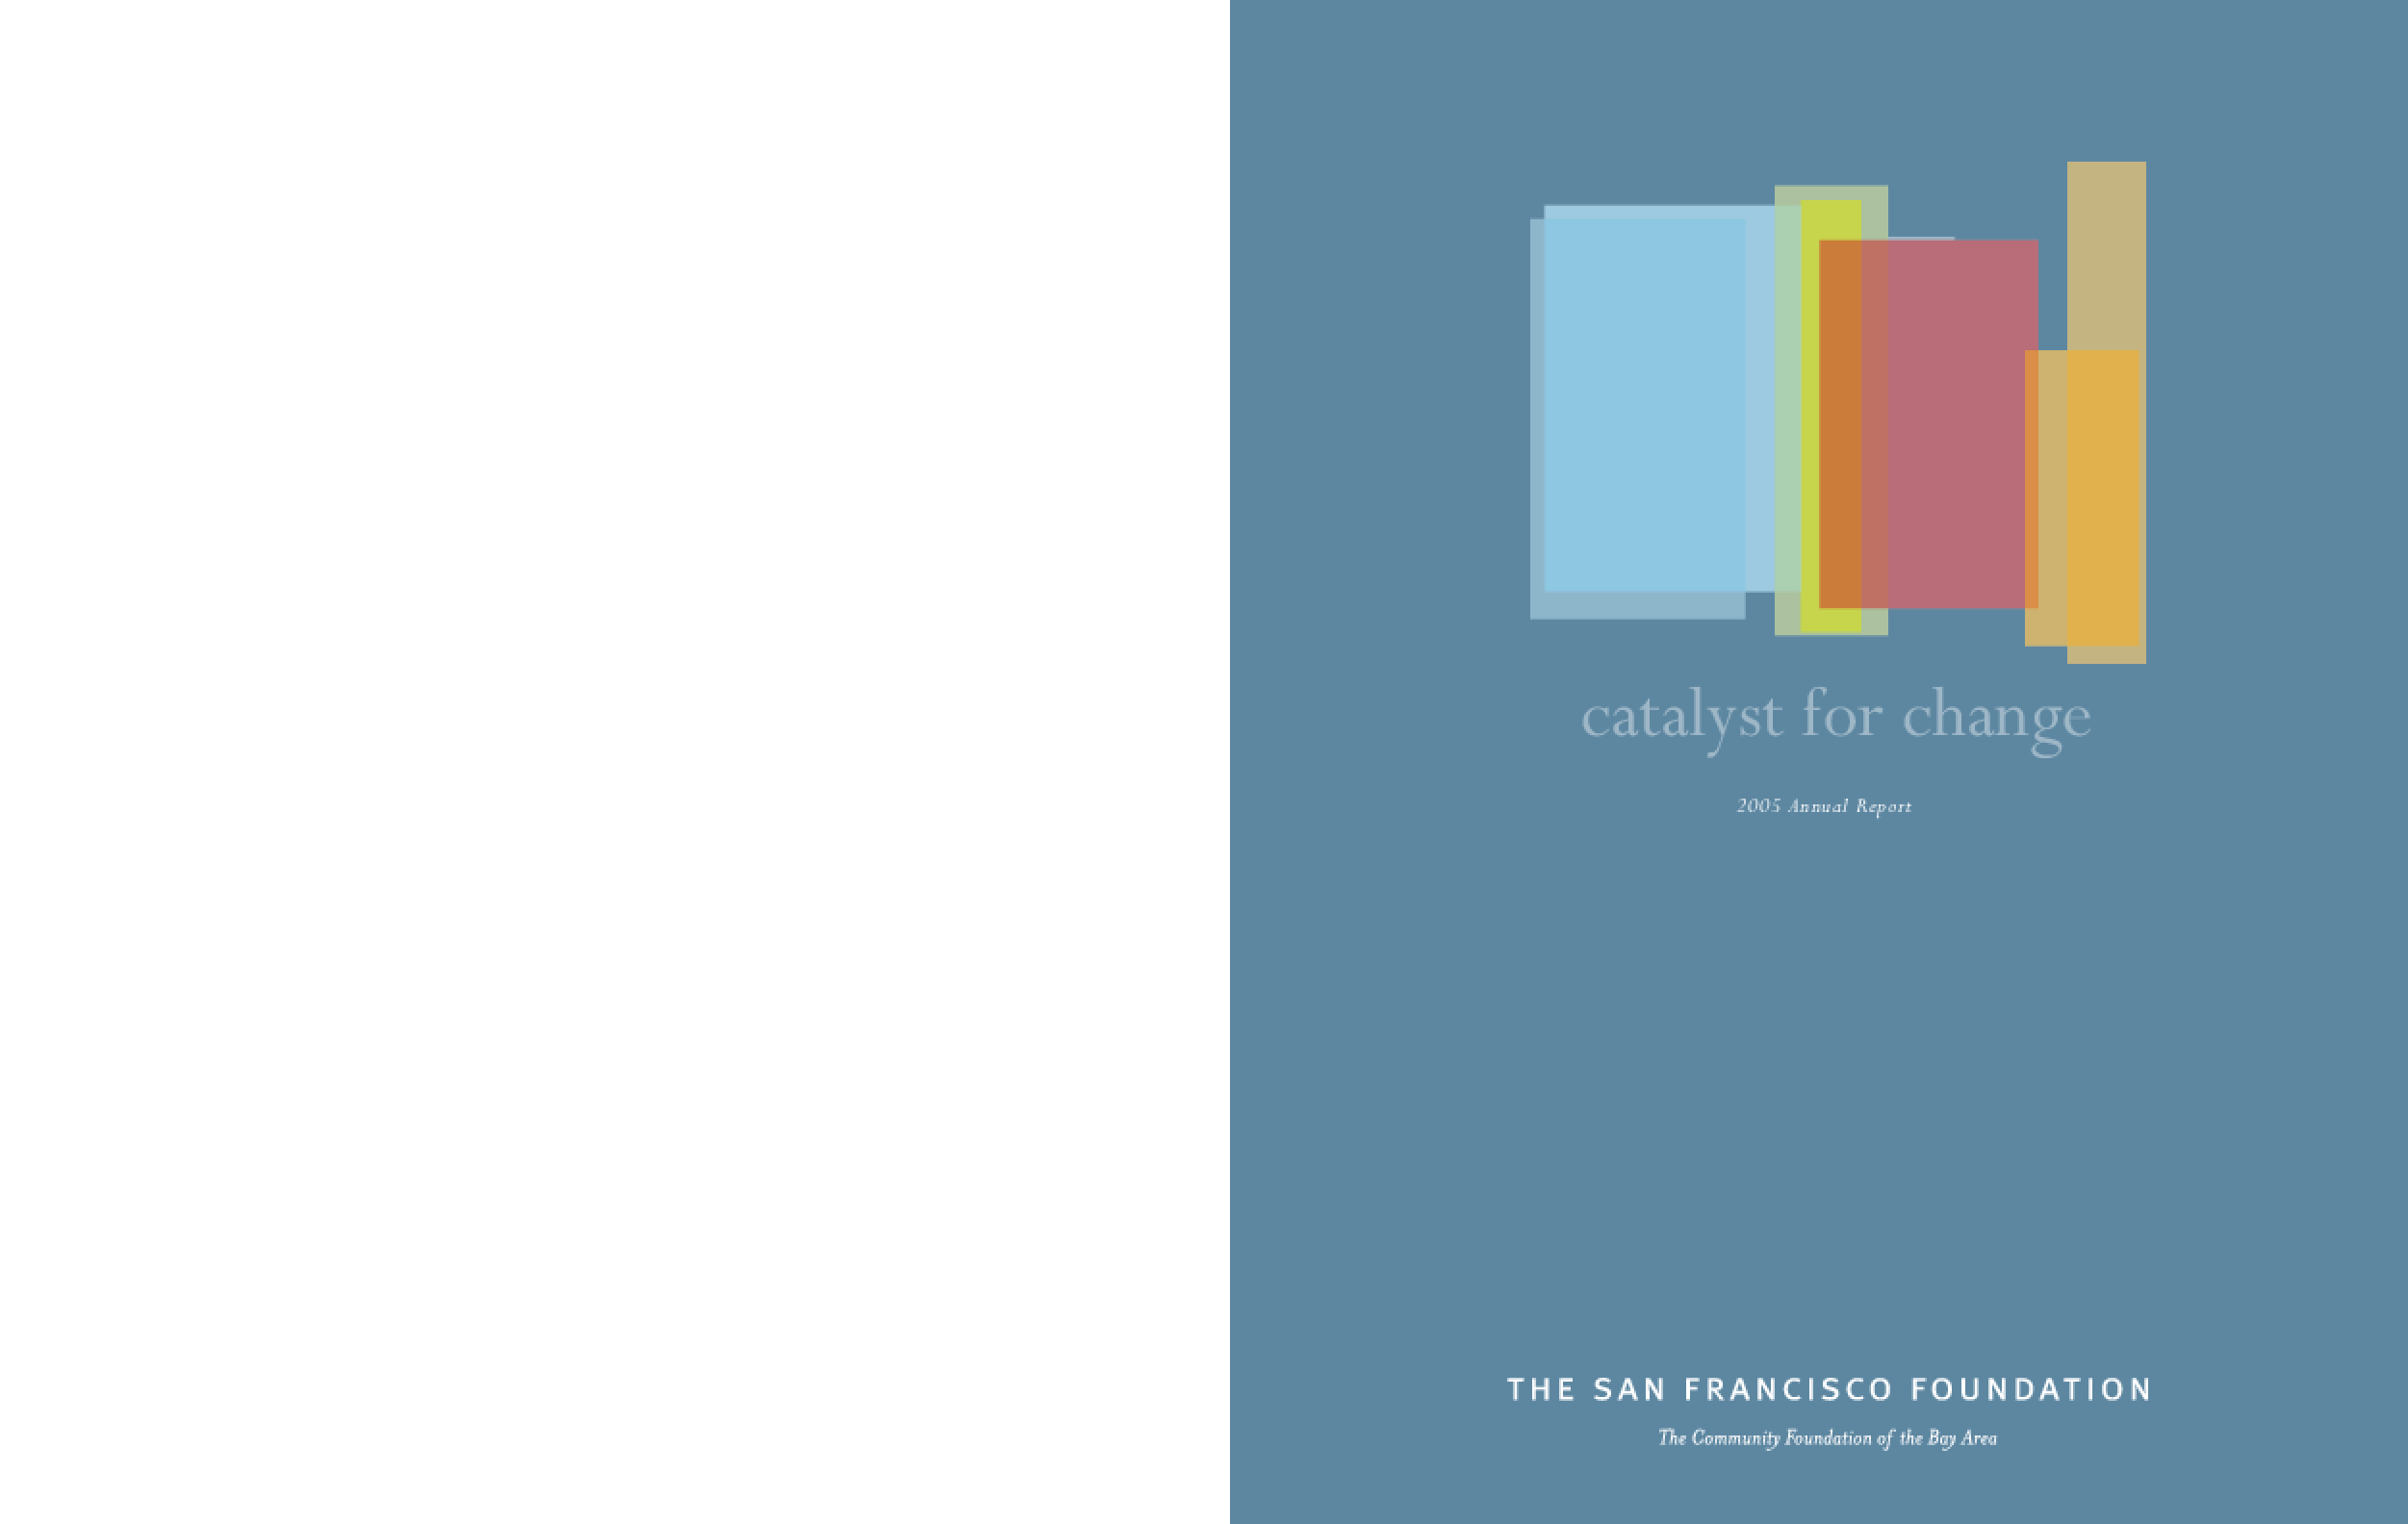 San Francisco Foundation - 2005 Annual Report: Catalyst for Change